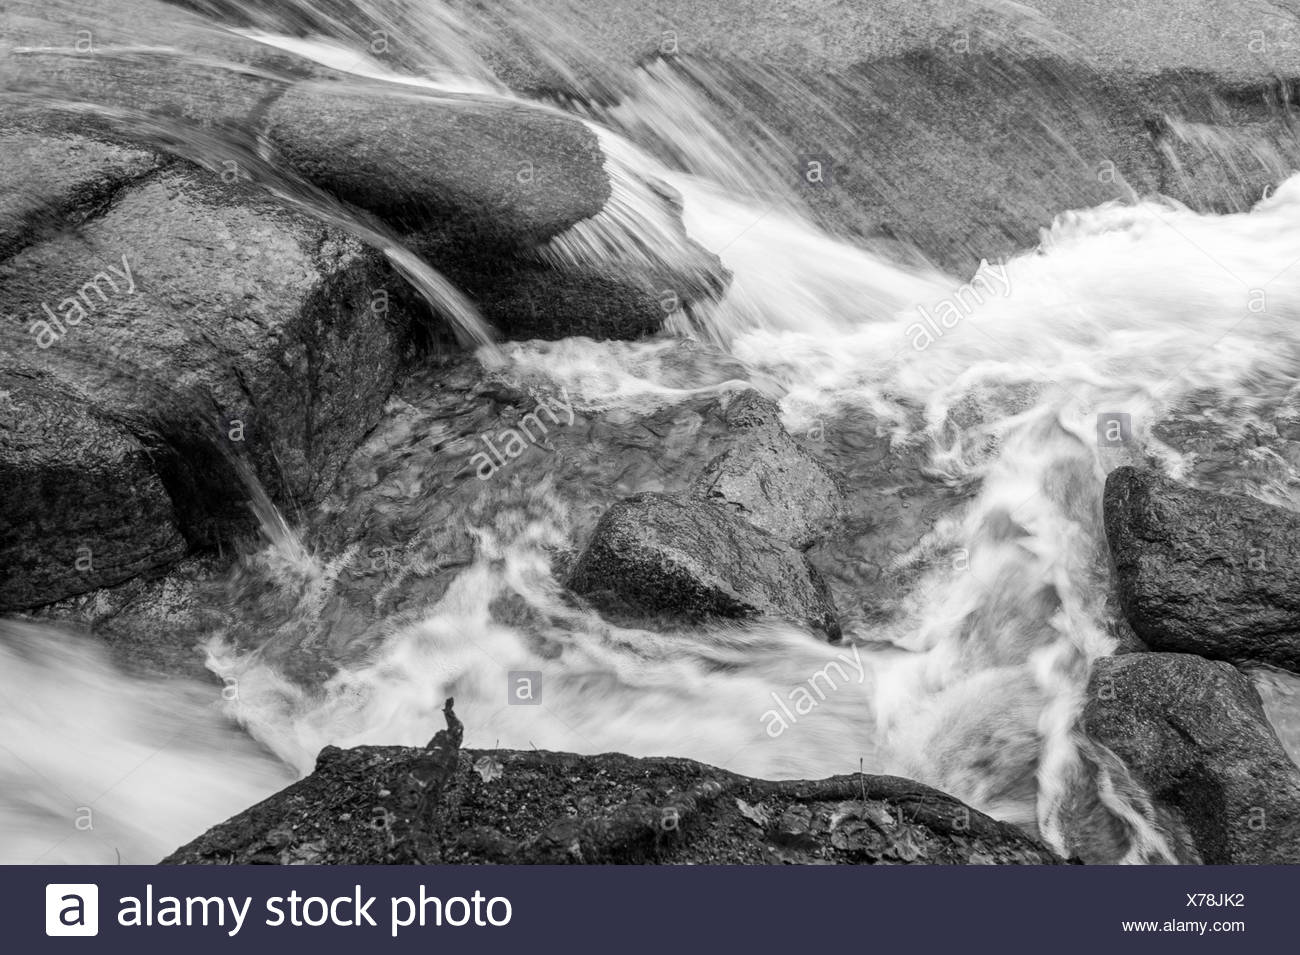 Water rushing and cascading over boulders in Flume Gorge. - Stock Image